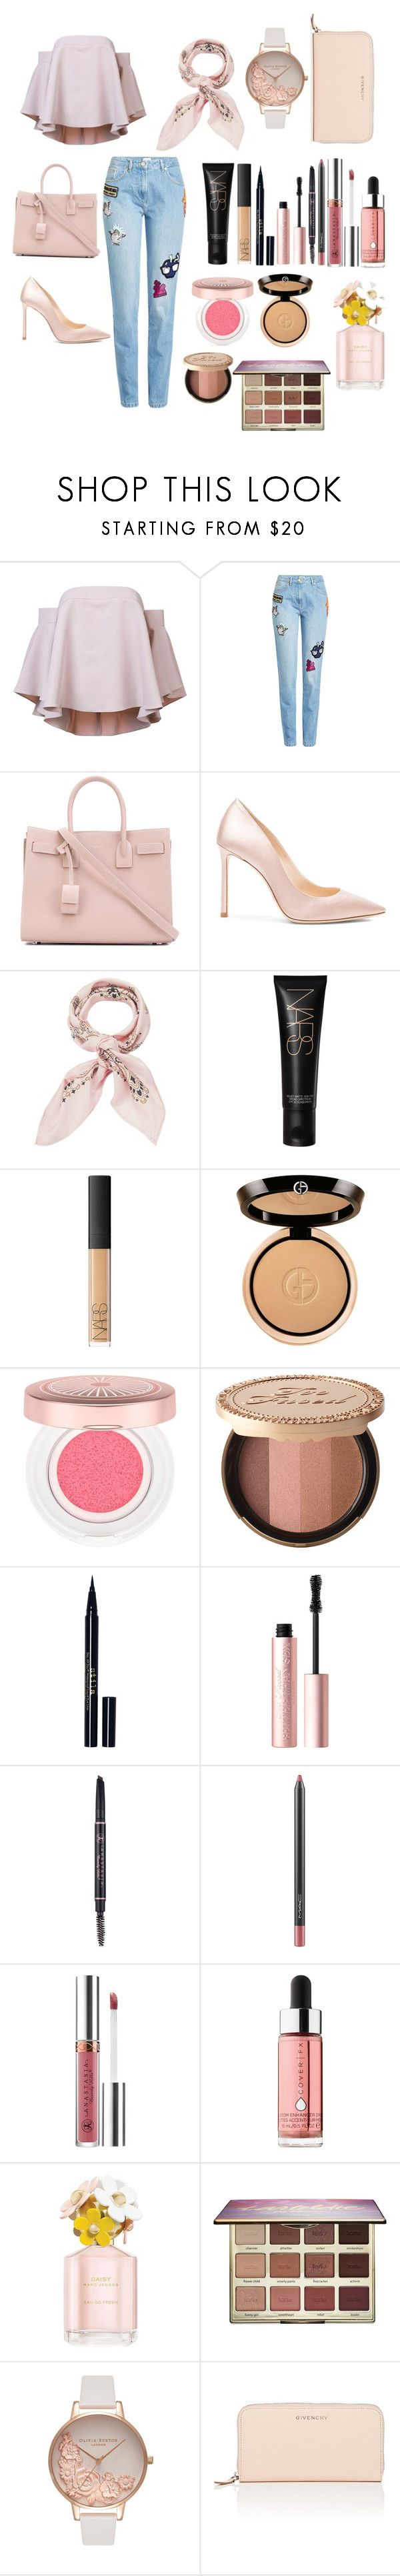 """Untitled #112"" by rahmadita14 on Polyvore featuring Milly, Kenzo, Yves Saint Laurent, Jimmy Choo, Manipuri, NARS Cosmetics, Giorgio Armani, Lancôme, Too Faced Cosmetics and Stila"